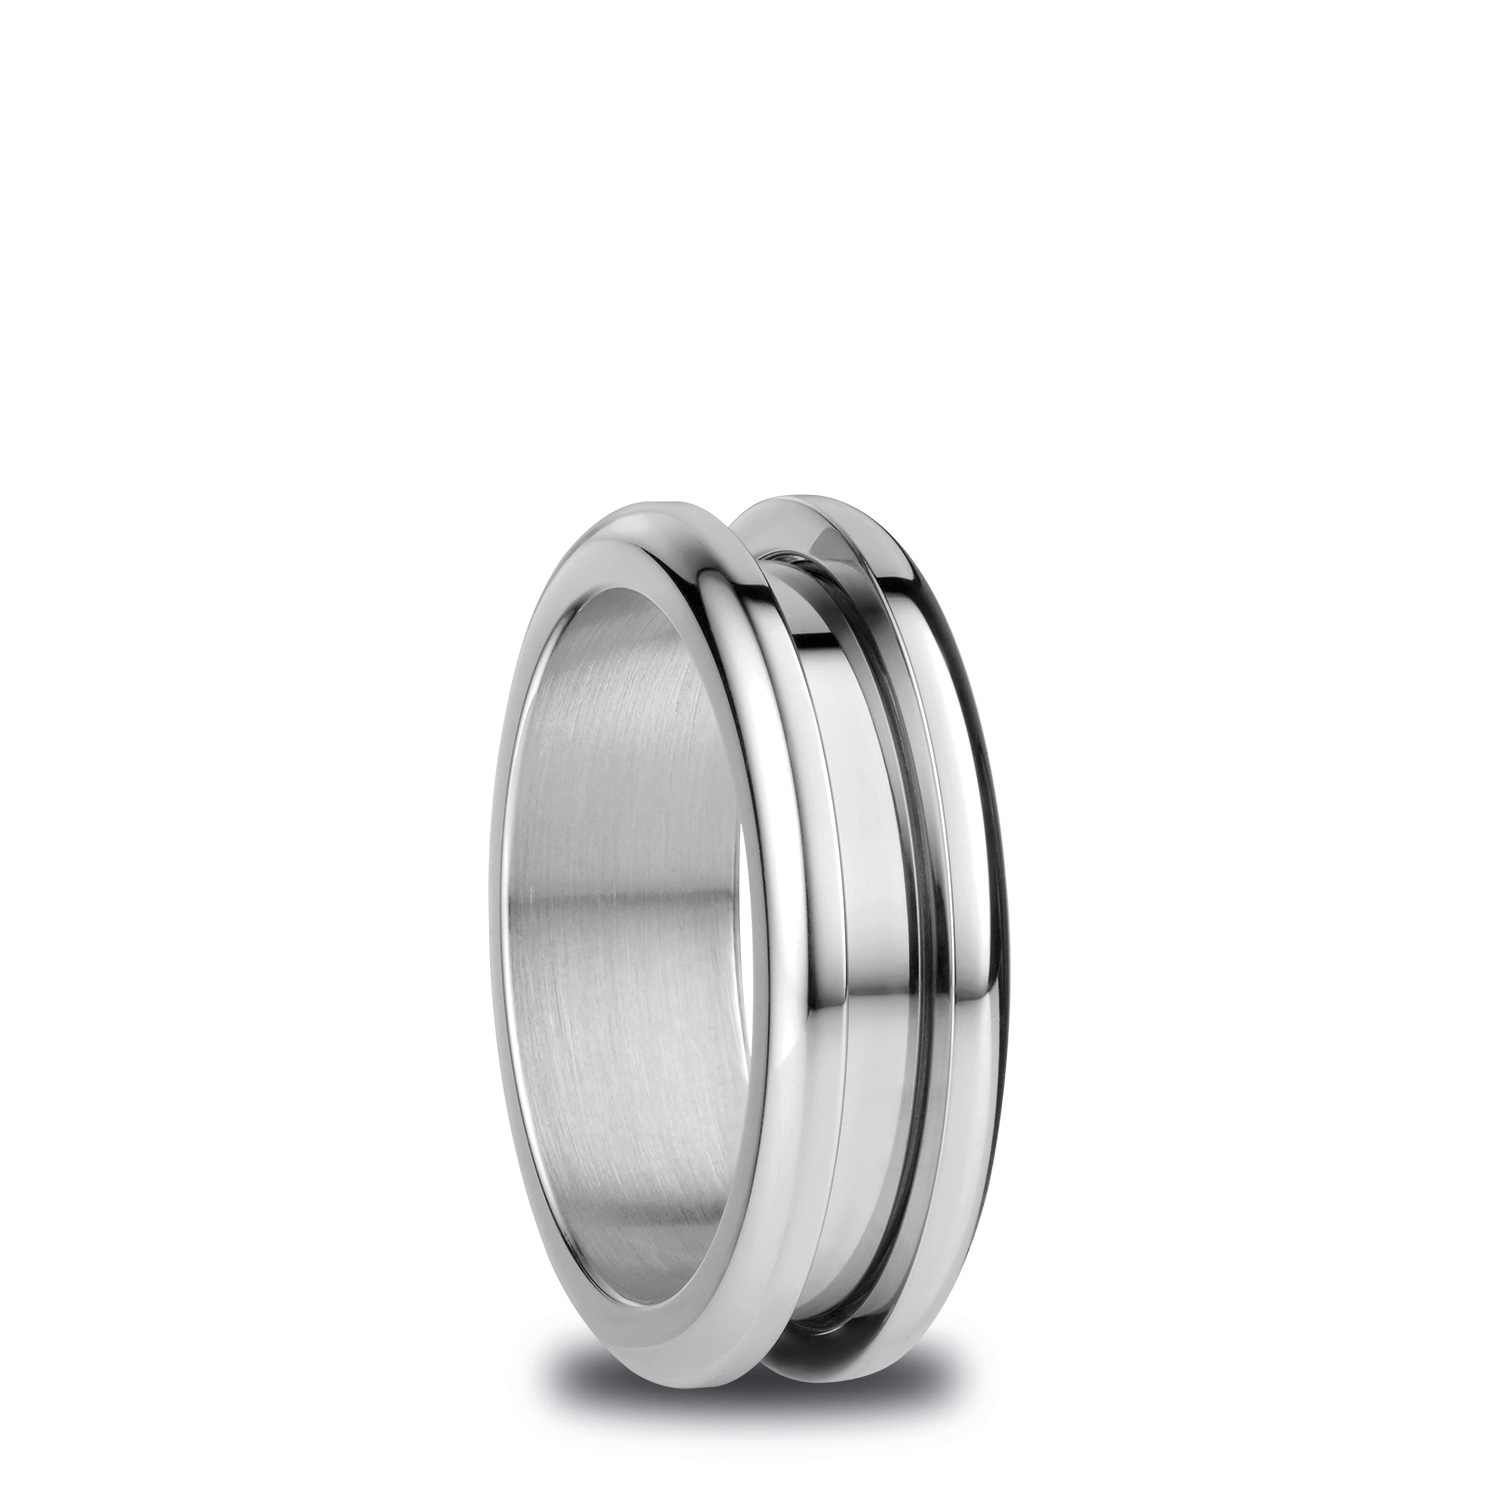 BERING Arctic Symphony Size 55 17.4mm Diameter Polished Silver Ring 526-10-73